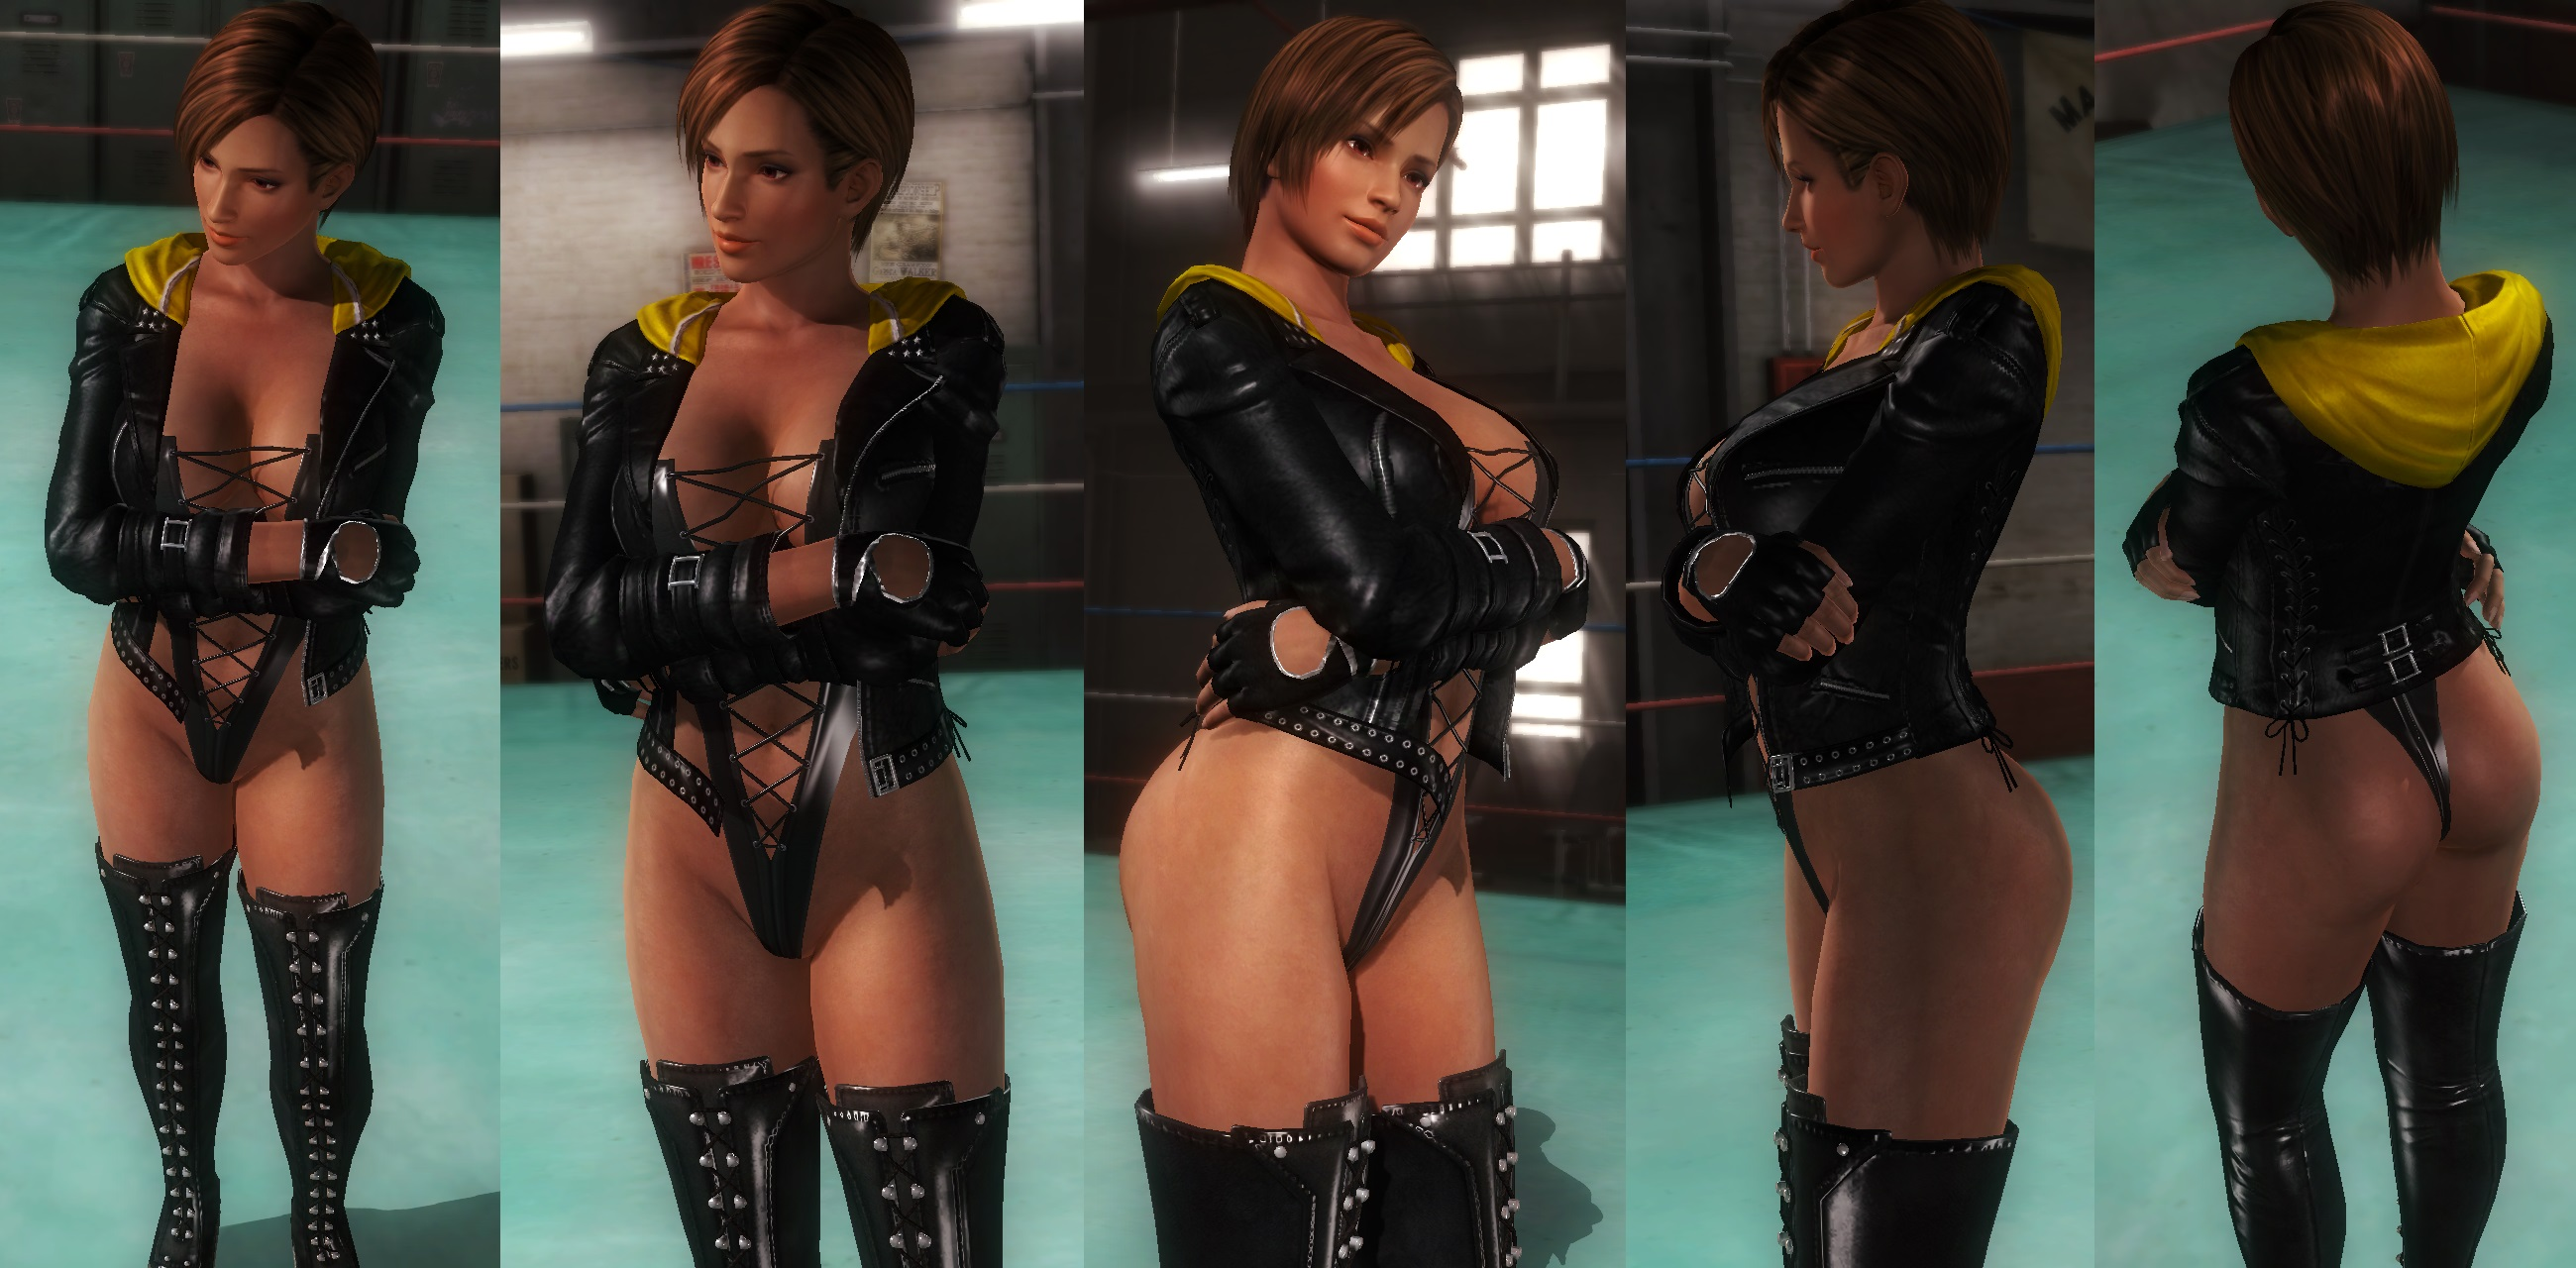 Lisa jacket thigh highs by funnybunny666